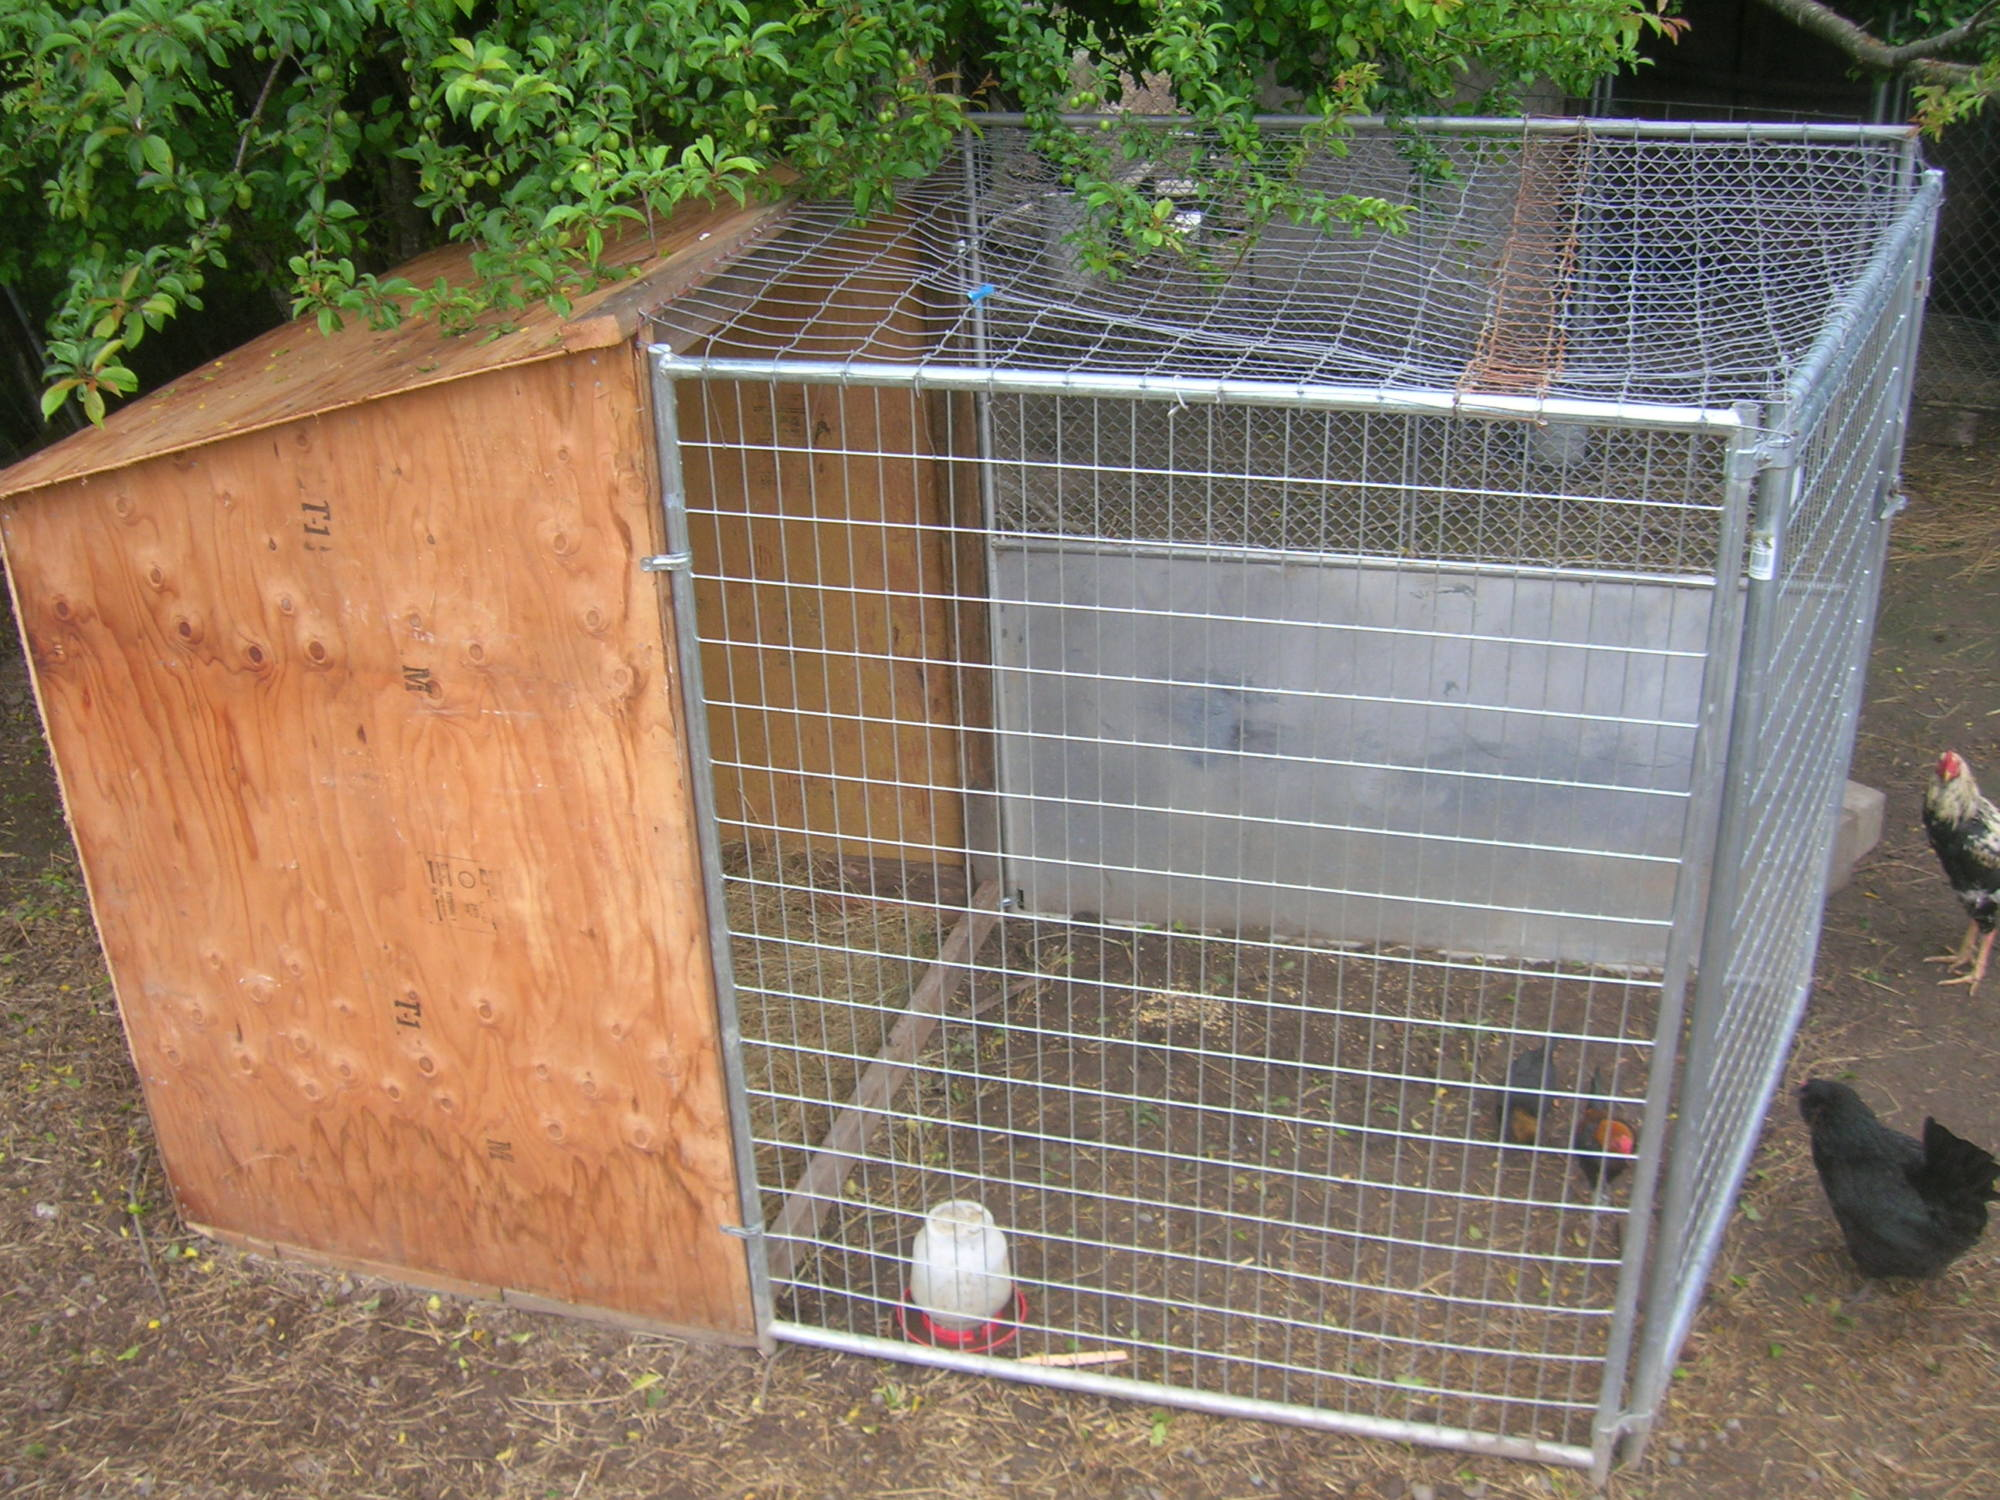 My Breeding Pen Attempt Backyard Chickens Learn How To Raise